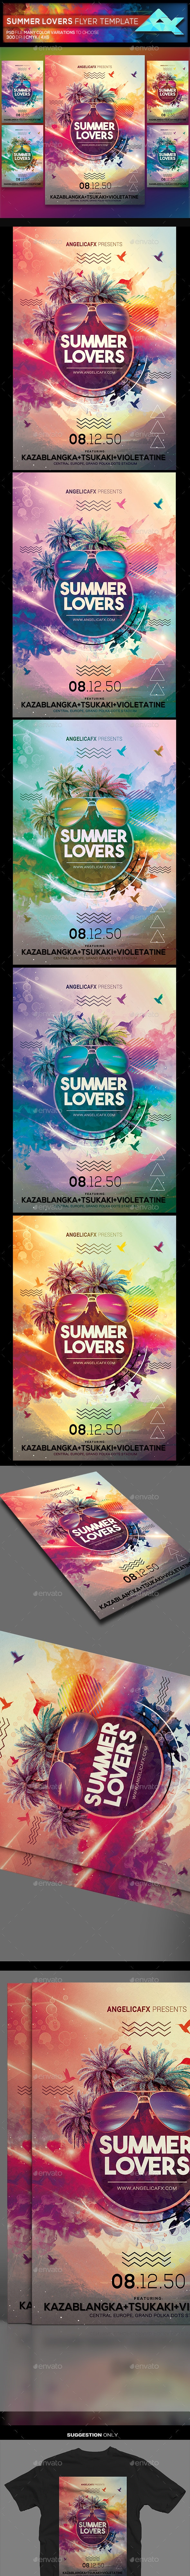 Summer Lovers Photoshop Flyer Template - Flyers Print Templates